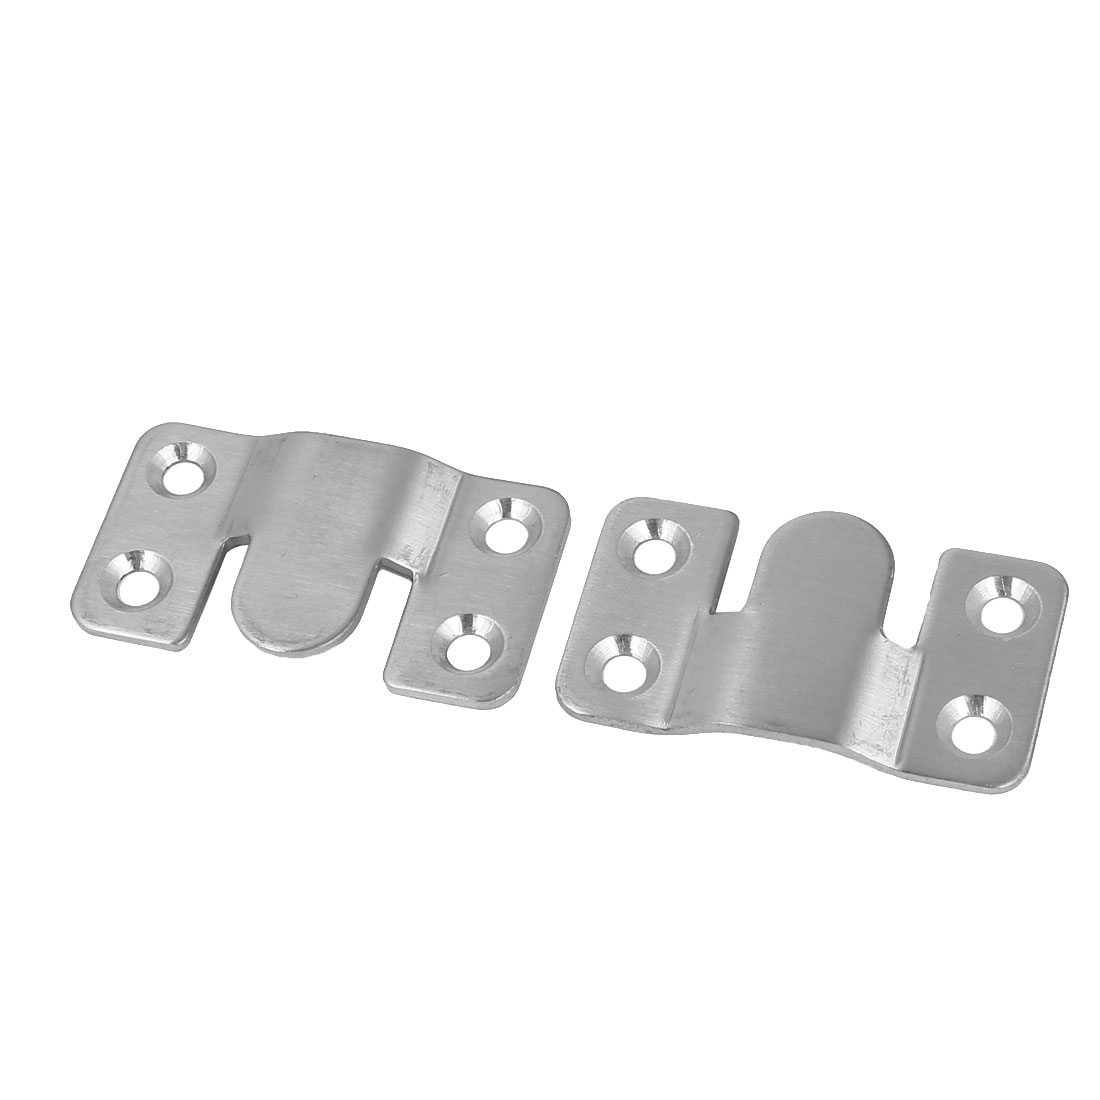 53mm x 30mm Iron Photo Frame Sofa Sectional Connector Bracket 4pcs - image 1 of 3